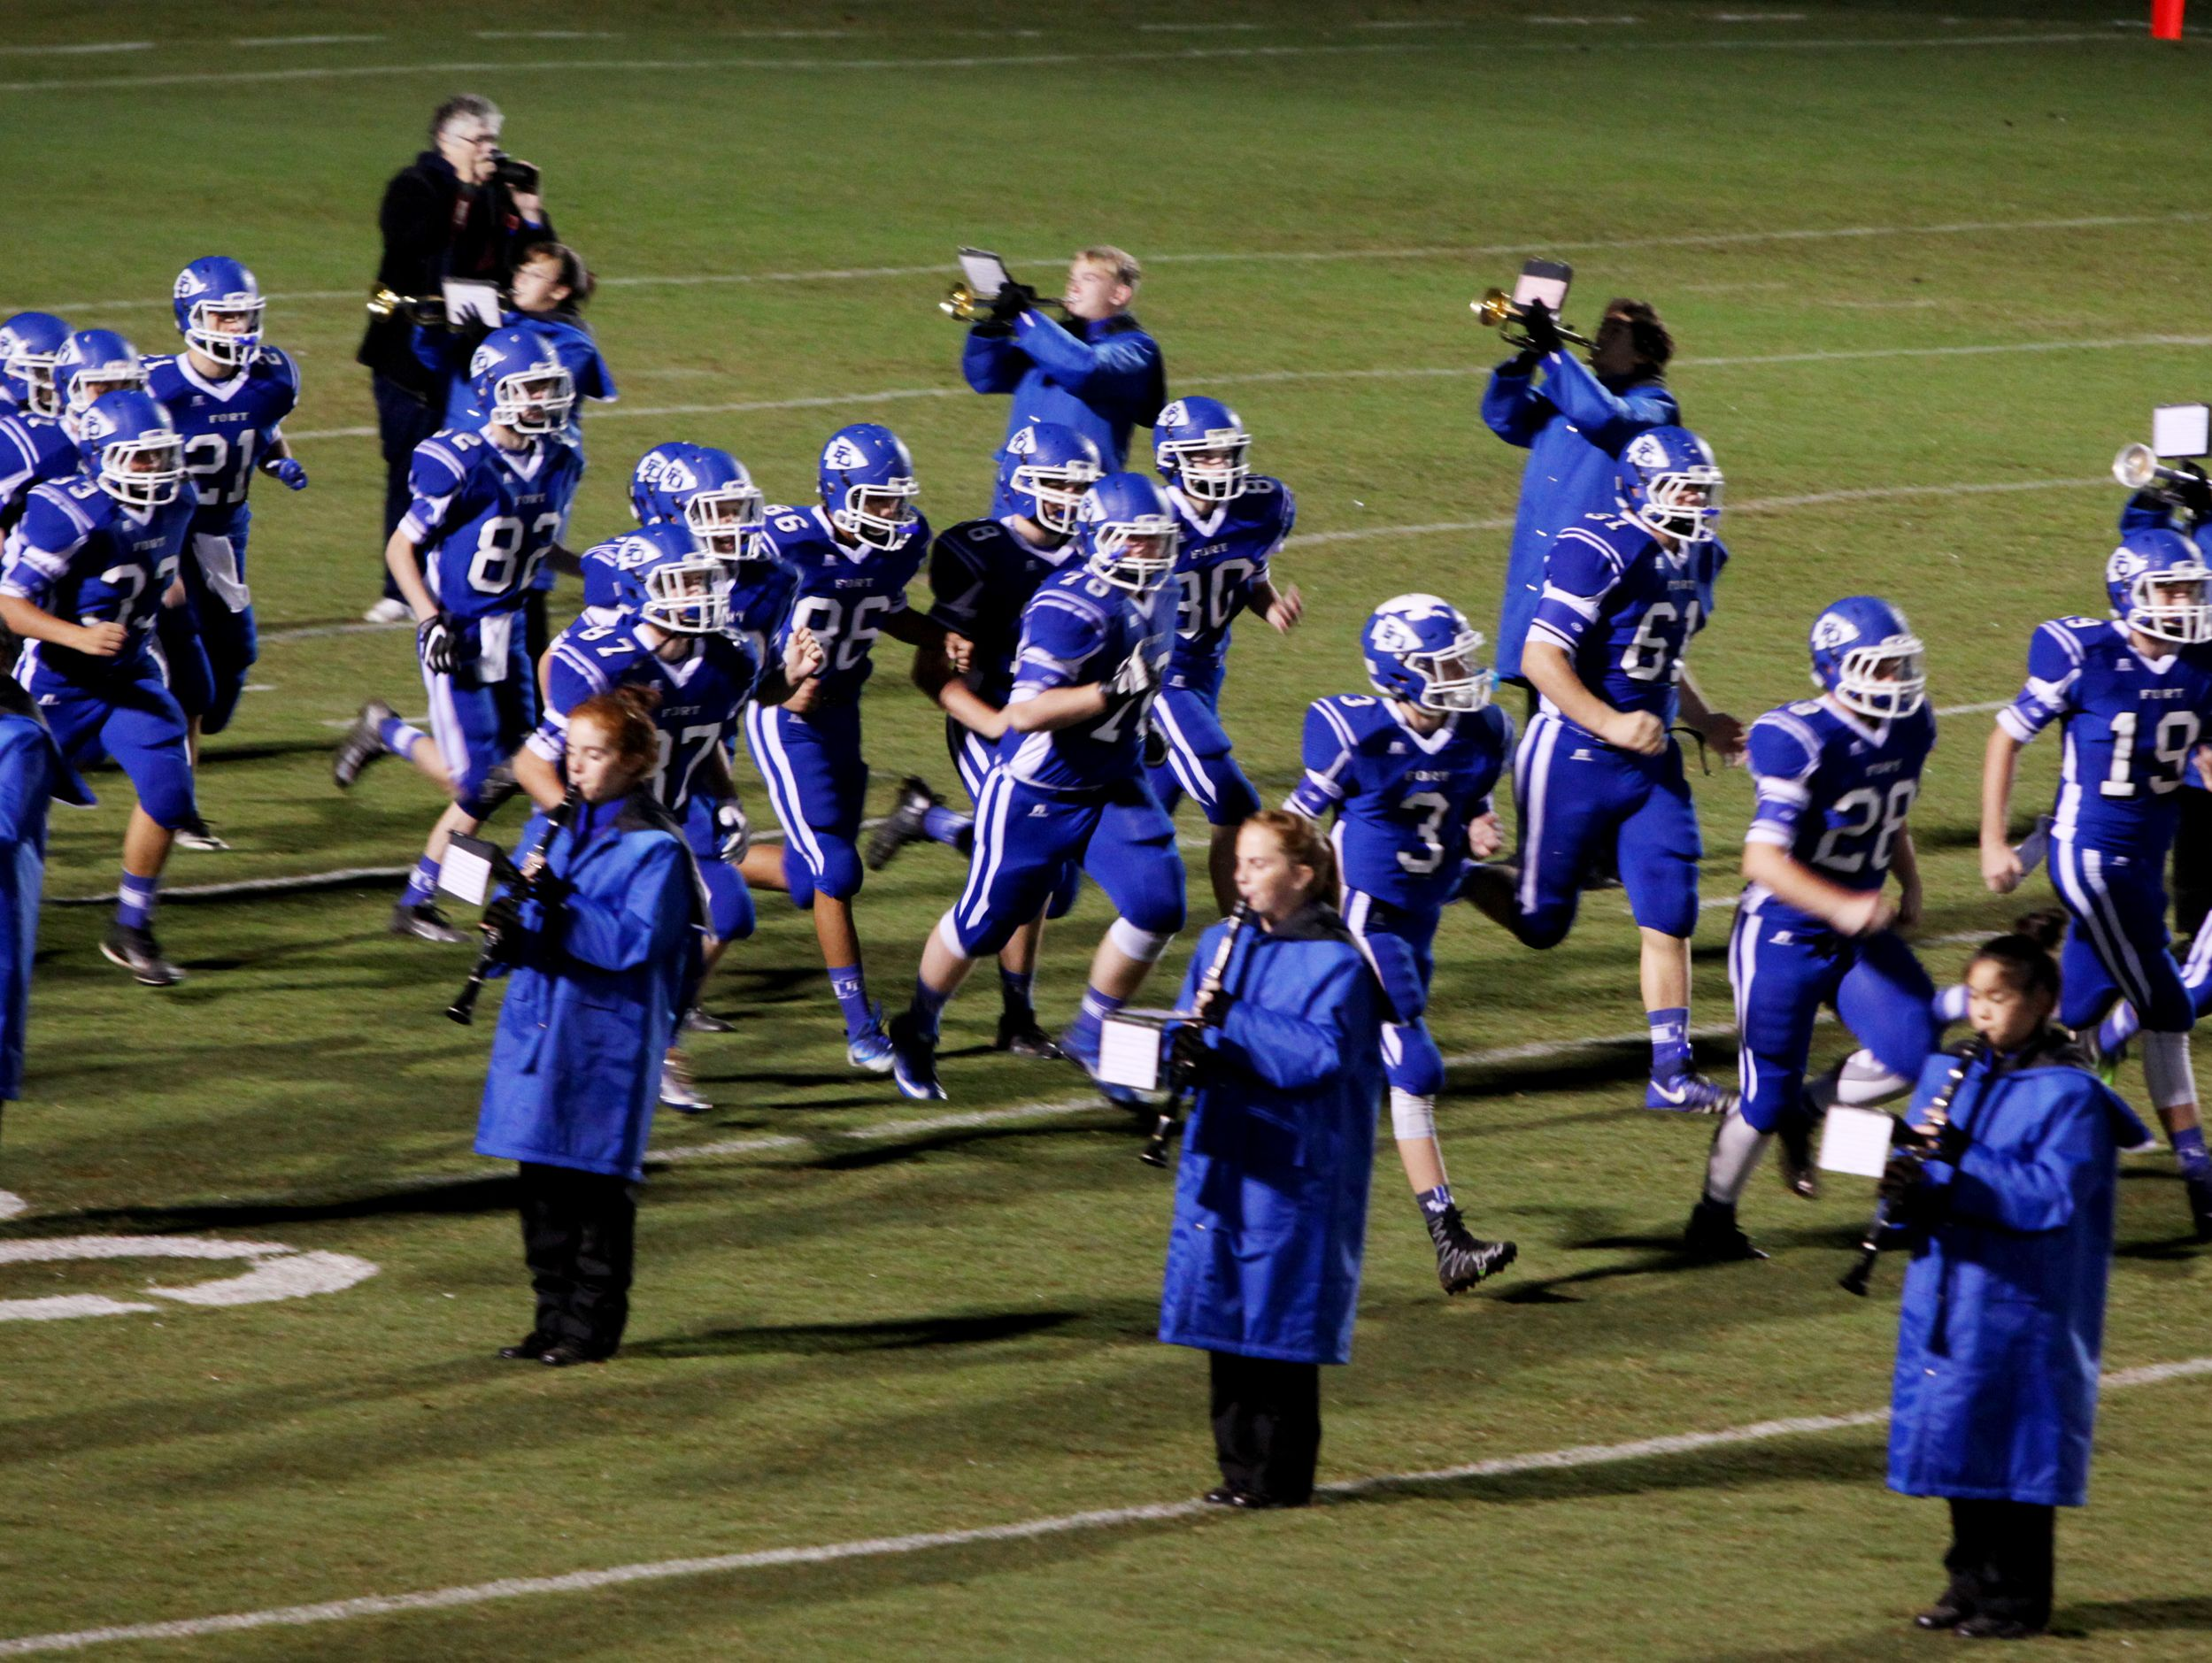 Fort Defiance jogs onto the field during the start of the game against Harrisonburg on Friday, Oct. 21, 2016 at Fort Defiance.